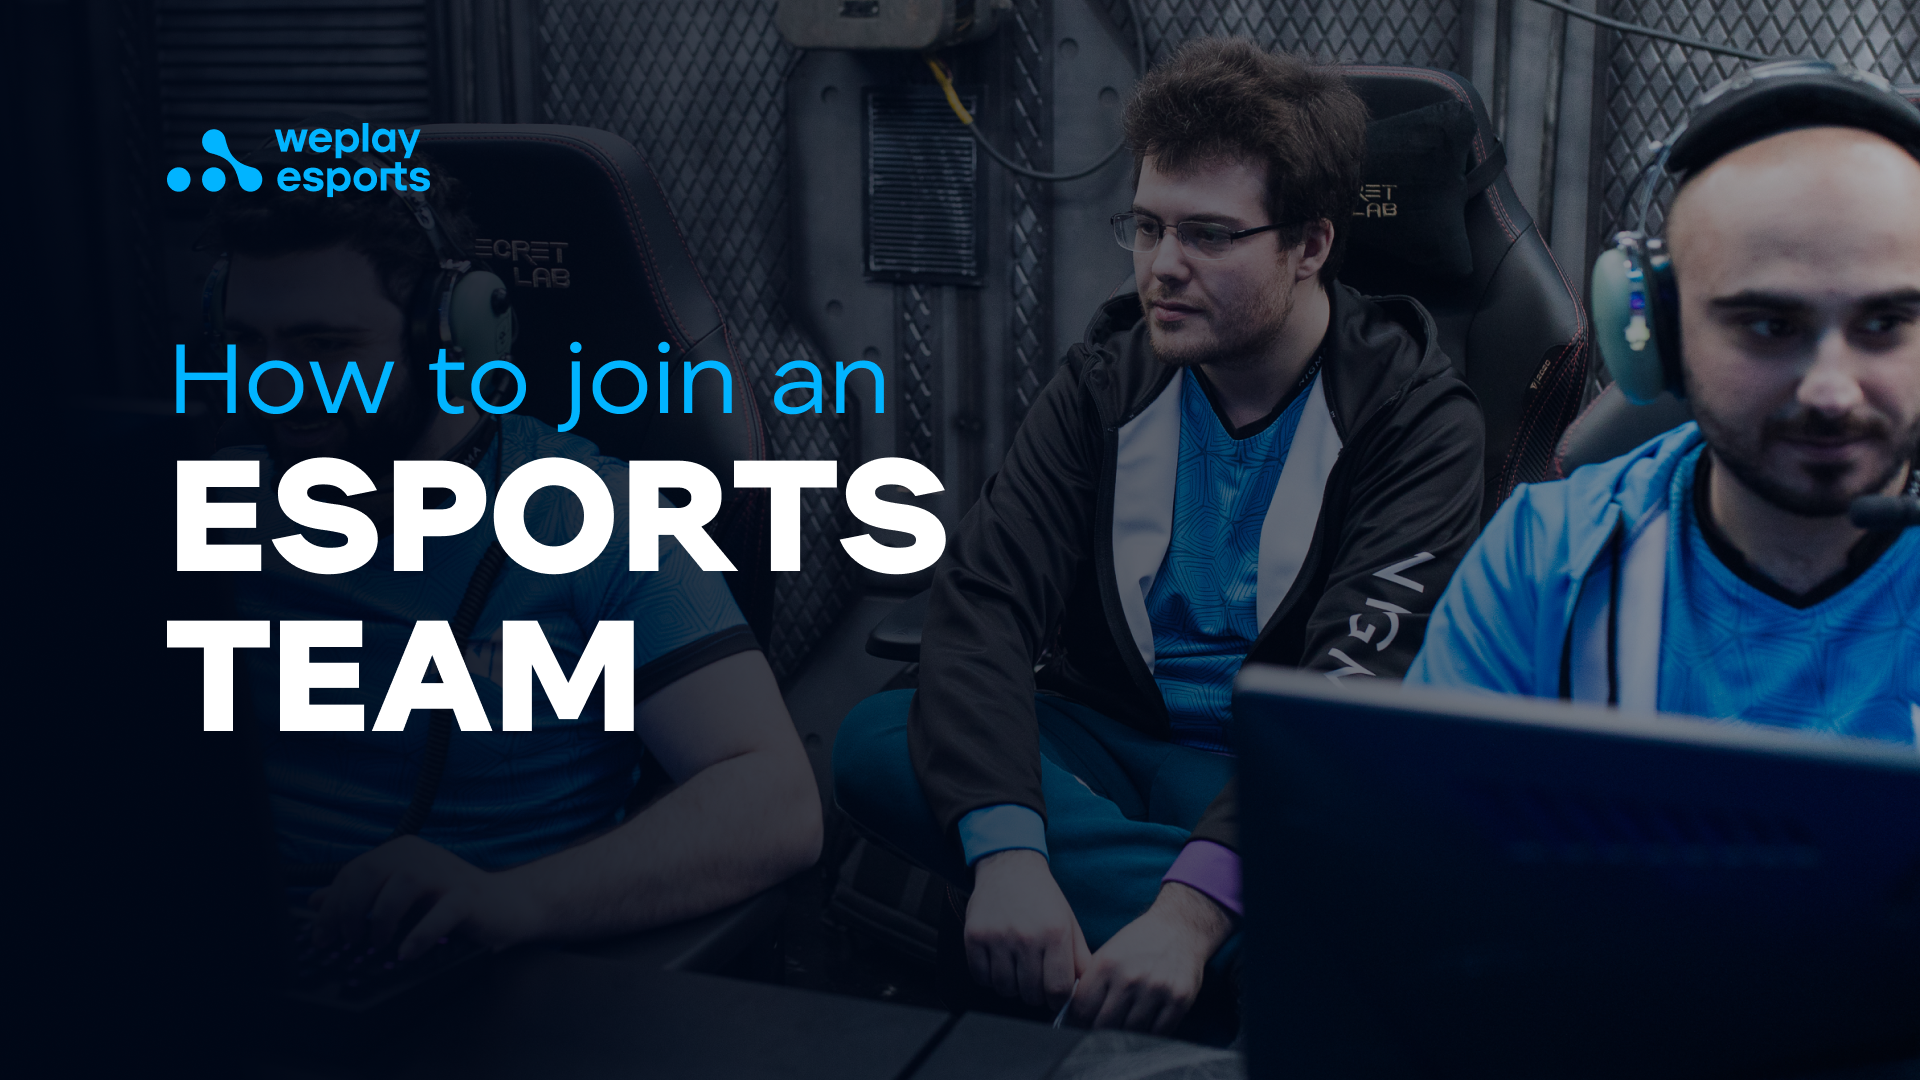 How to join an esport team